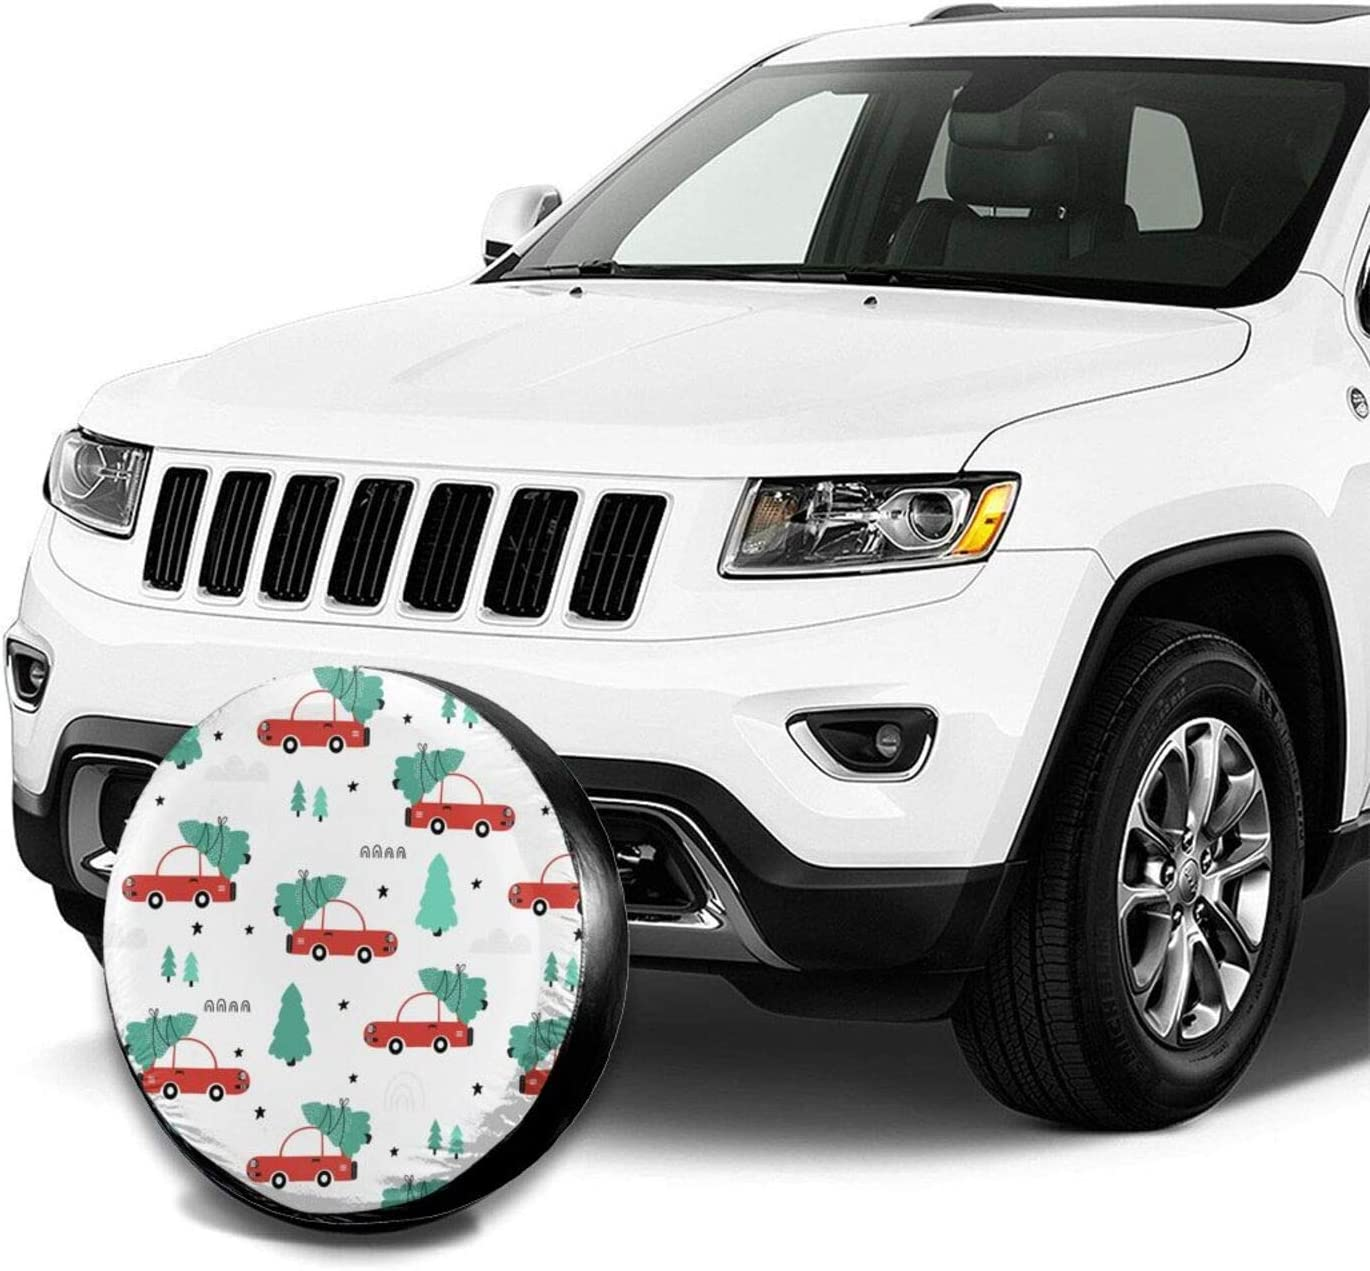 Universal Wheel Tire Cover Waterproof Dust-Proof Tire Protectors for Jeep Trailer Rv Van SUV Truck Camper and Many Vehicle 14 15 16 17 Inch Dujiea Greeting Christmas Spare Tire Cover